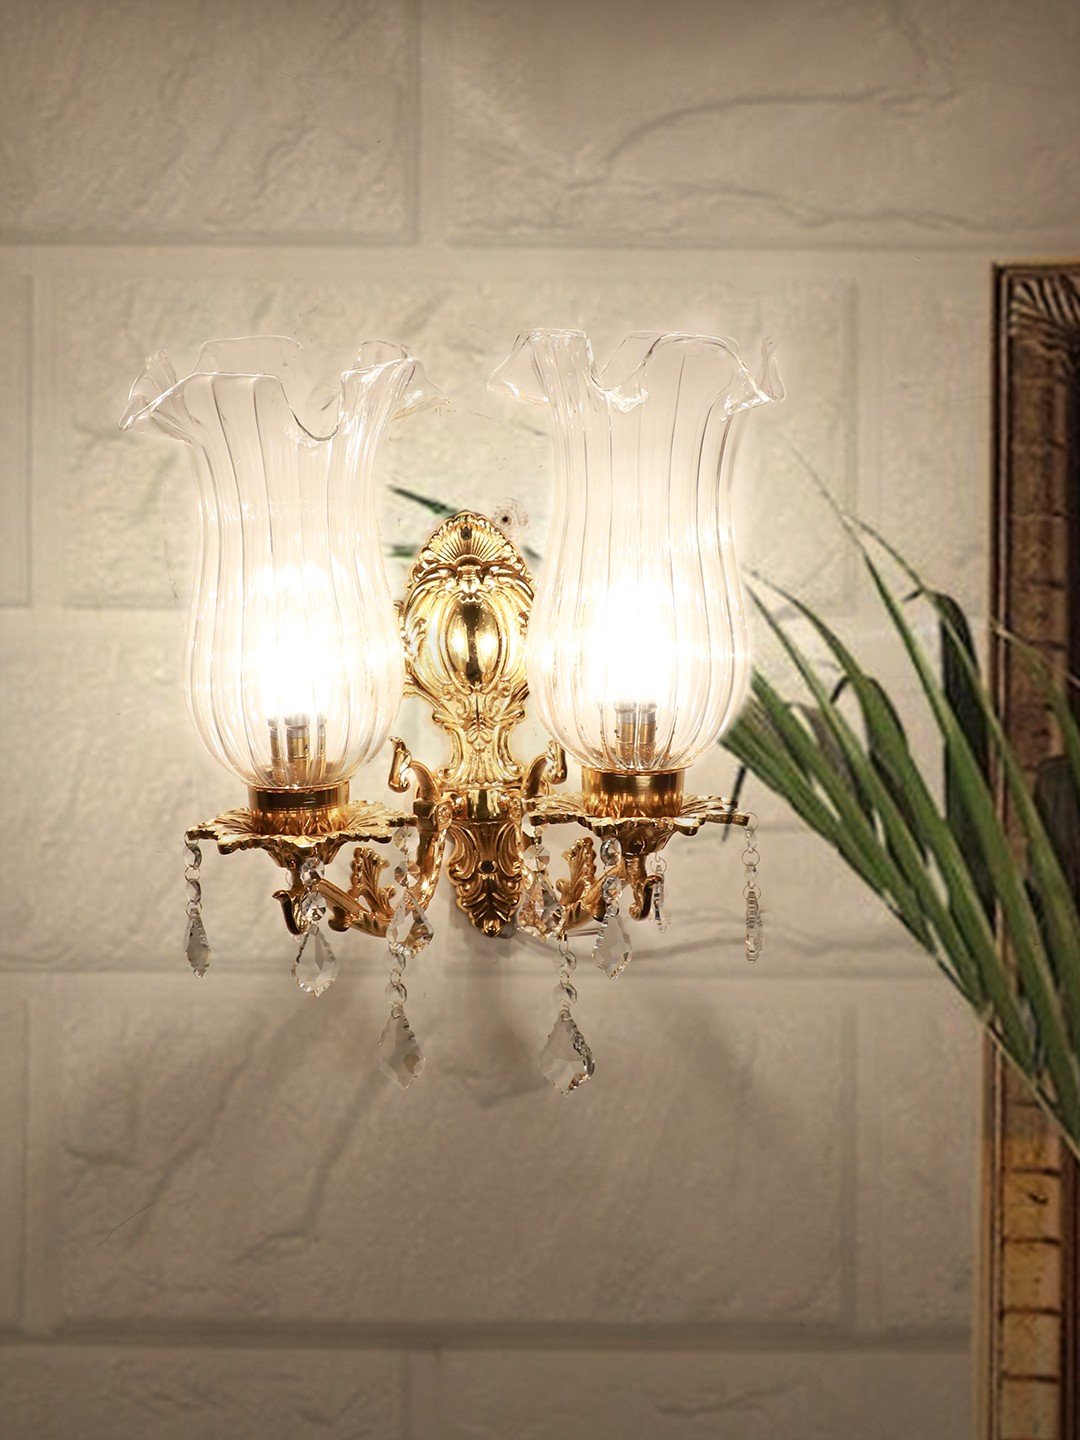 Majestic Gold & Crystal Aluminium Double Wall Sconce with Fluted Glass Jar Shades